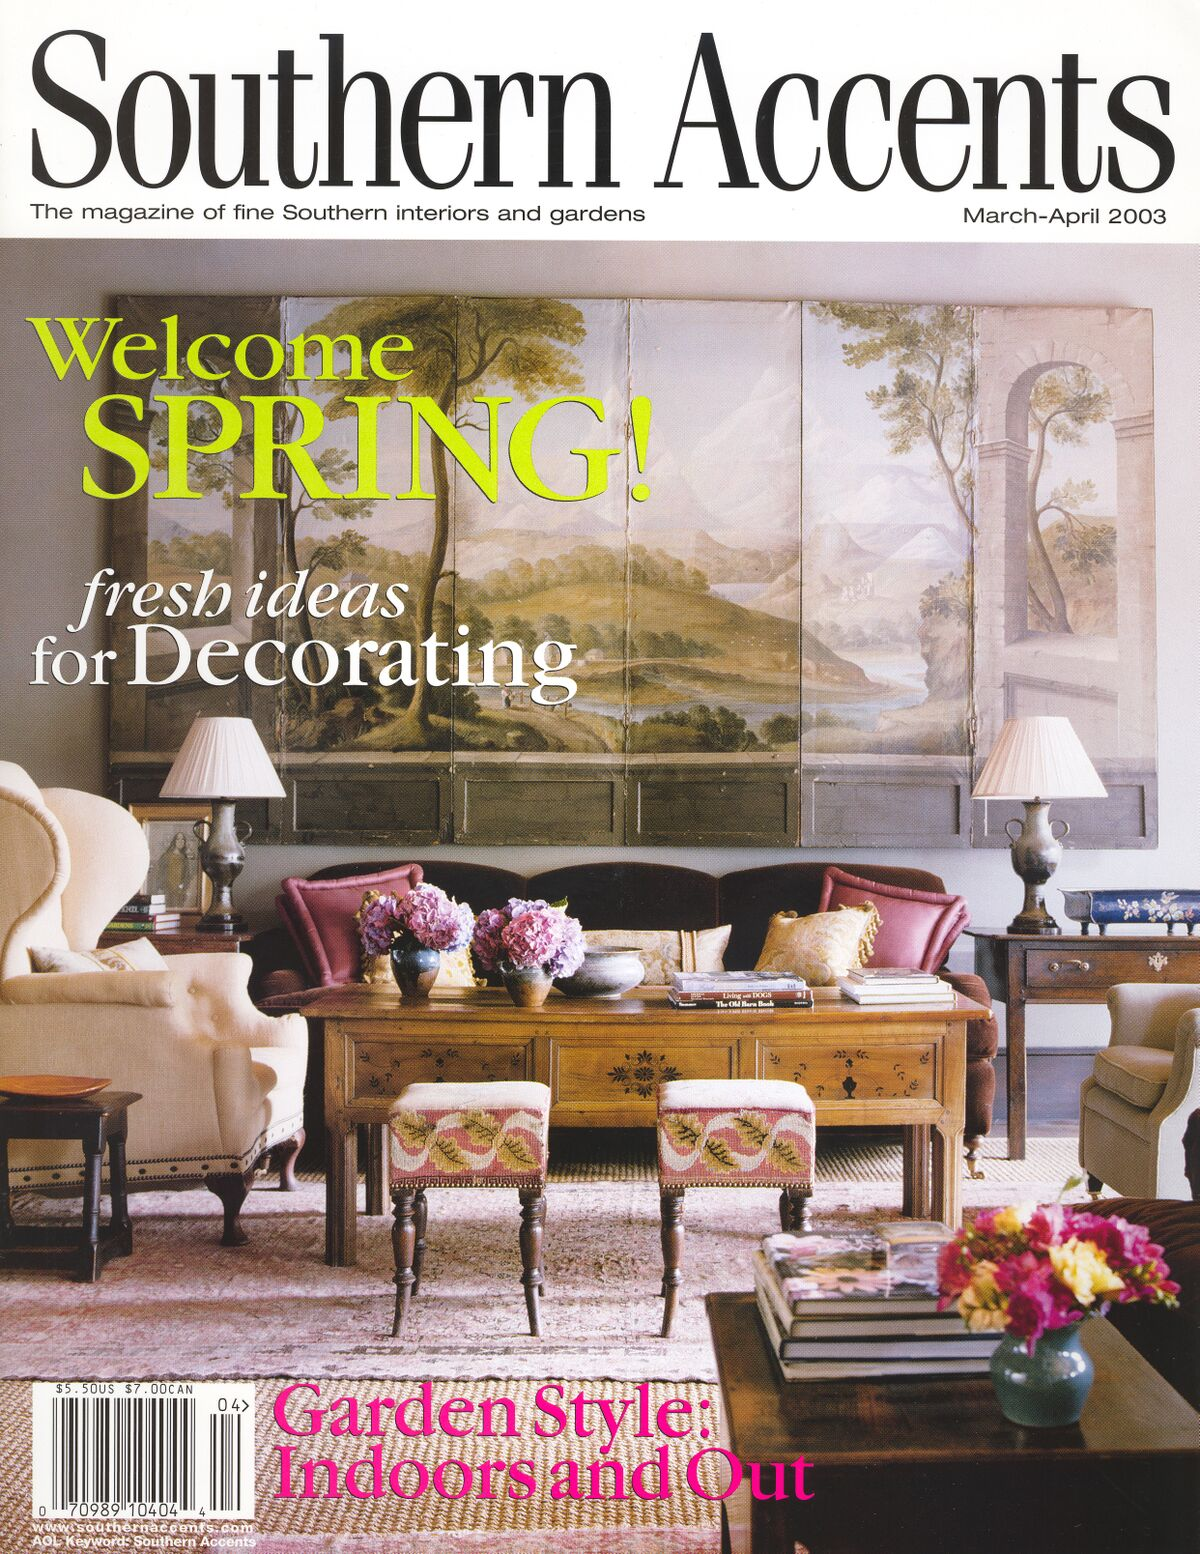 Stoneleigh Farm - Published in Southern Accents, March-April 2003